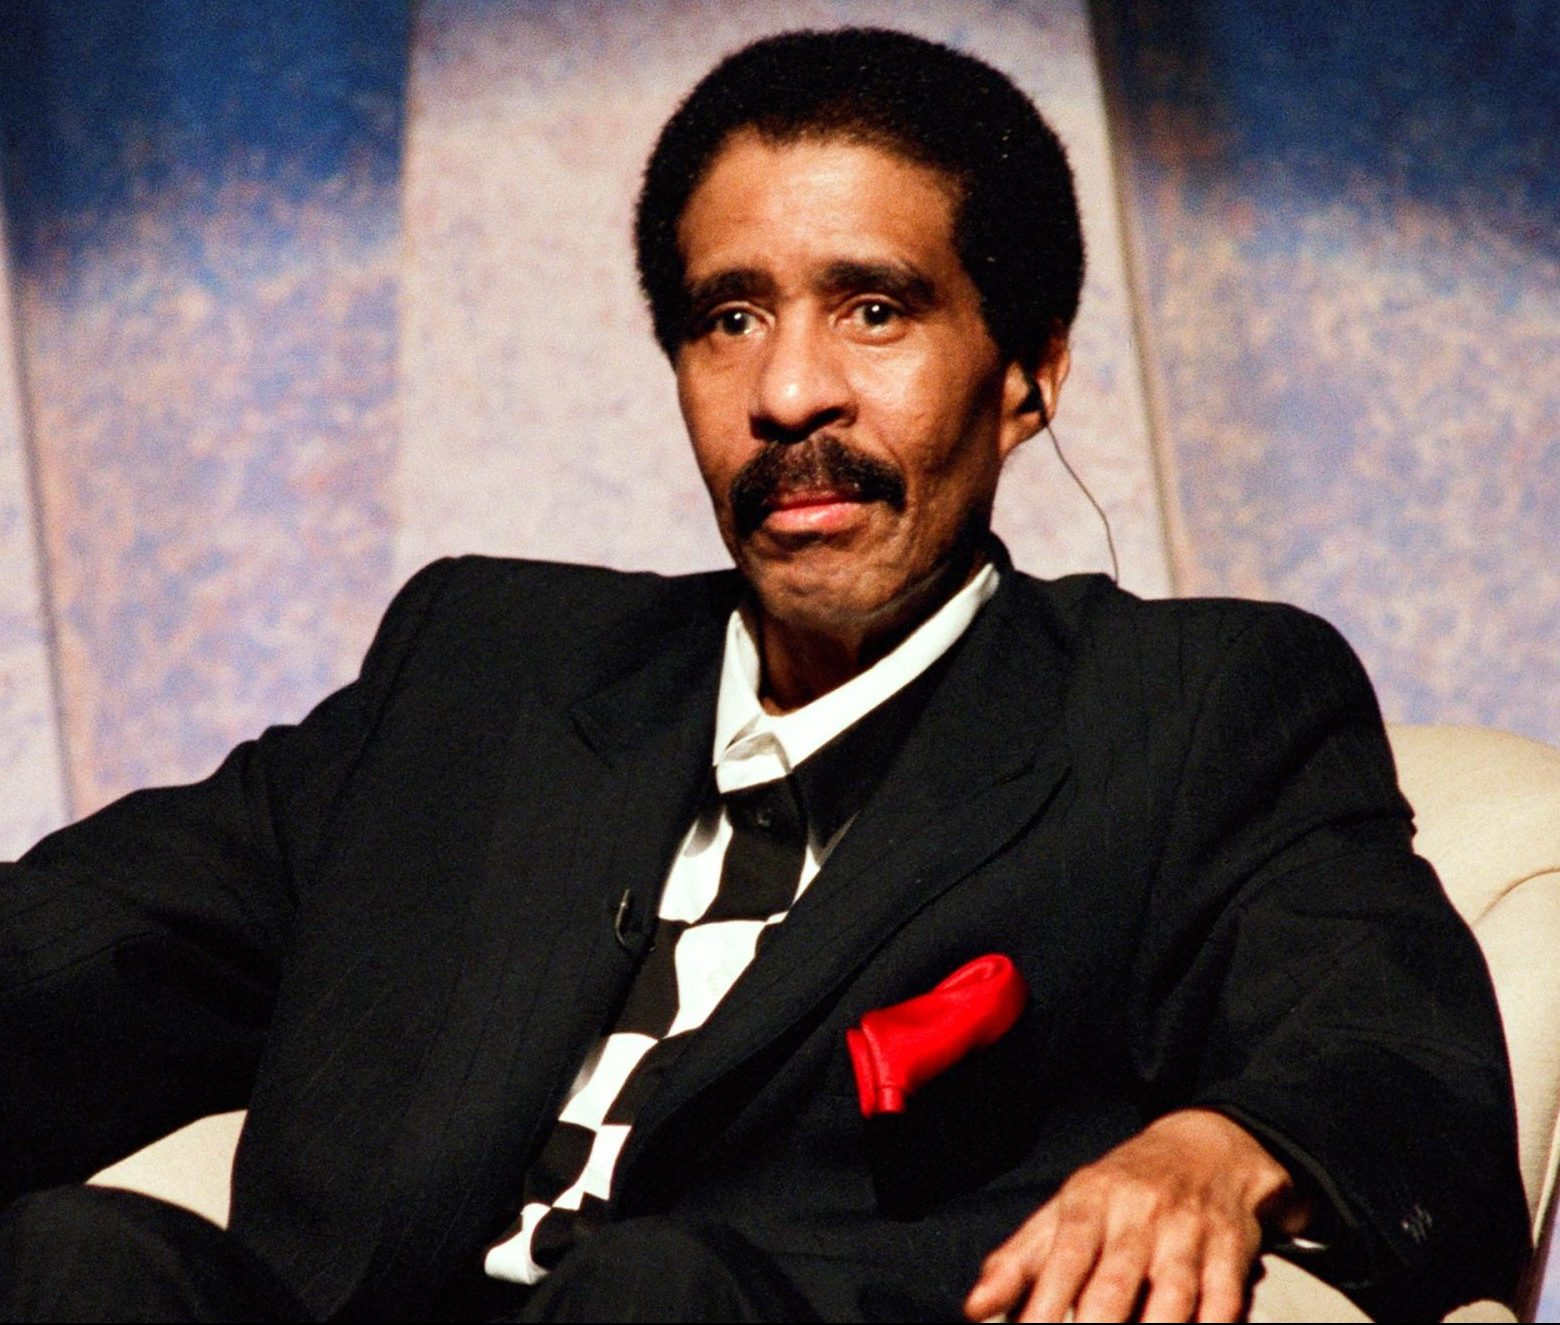 image e1606821873262 20 Things You Might Not Have Known About Richard Pryor